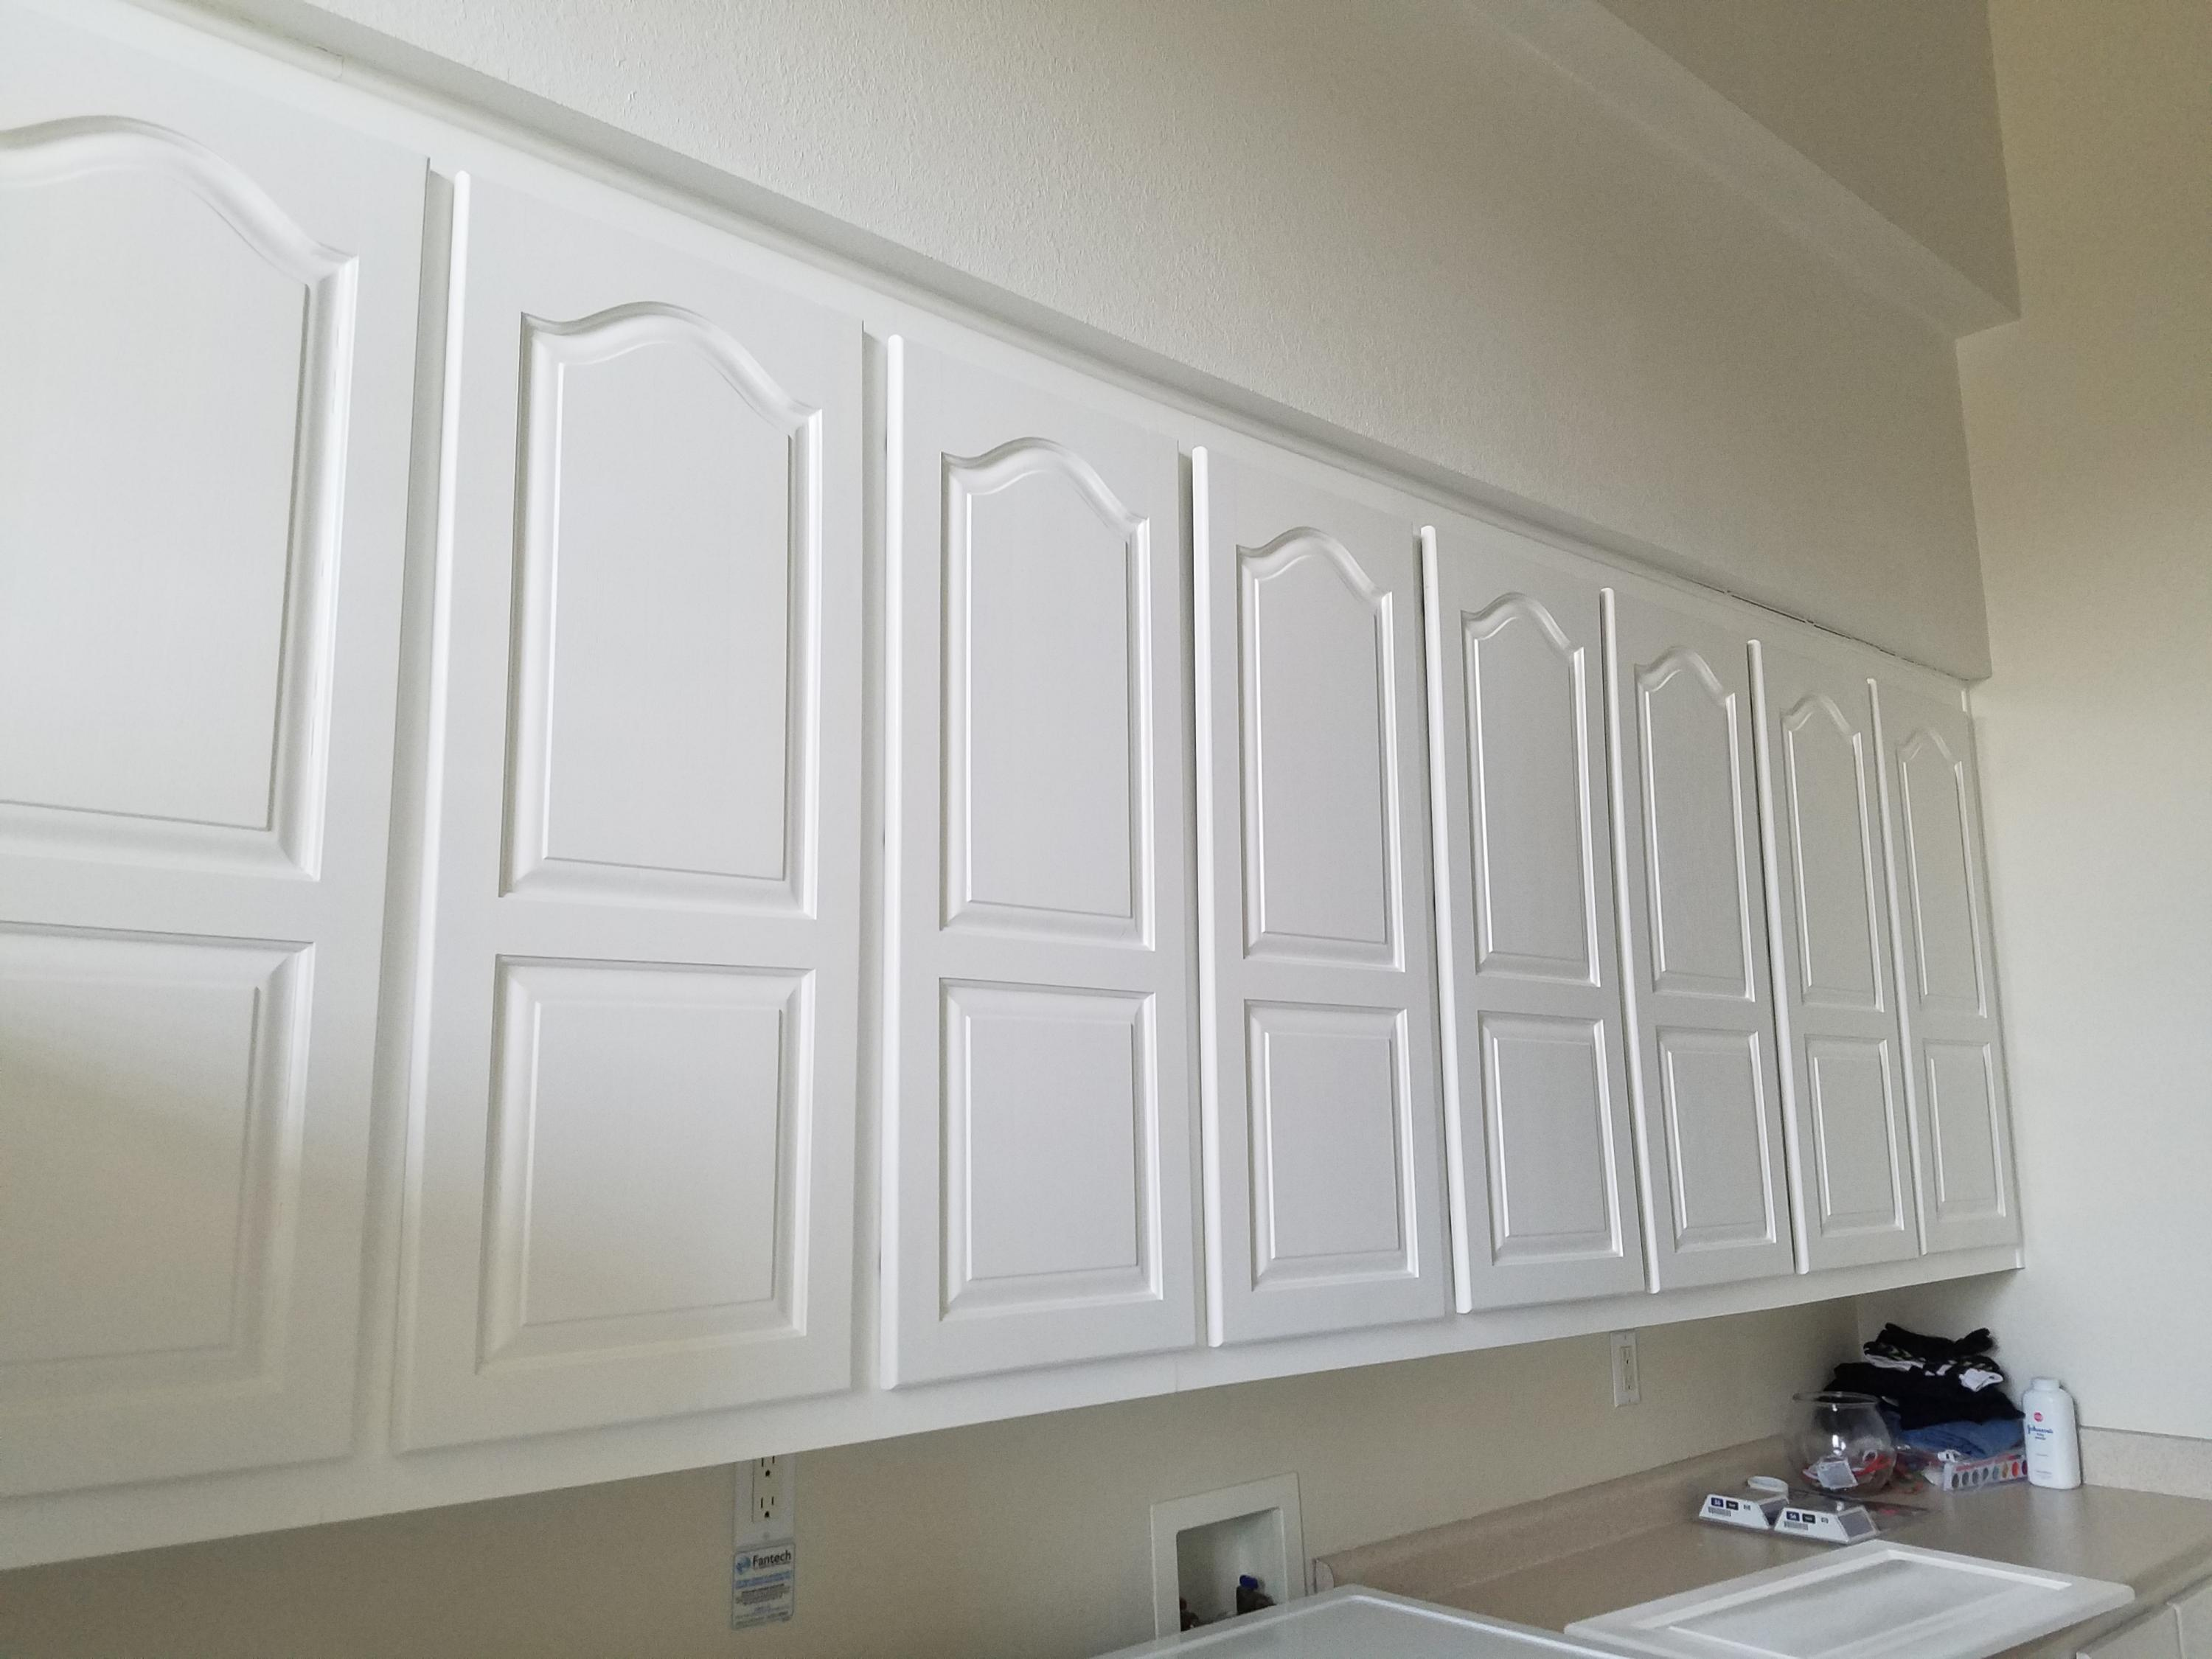 Cabinets in Utility Room